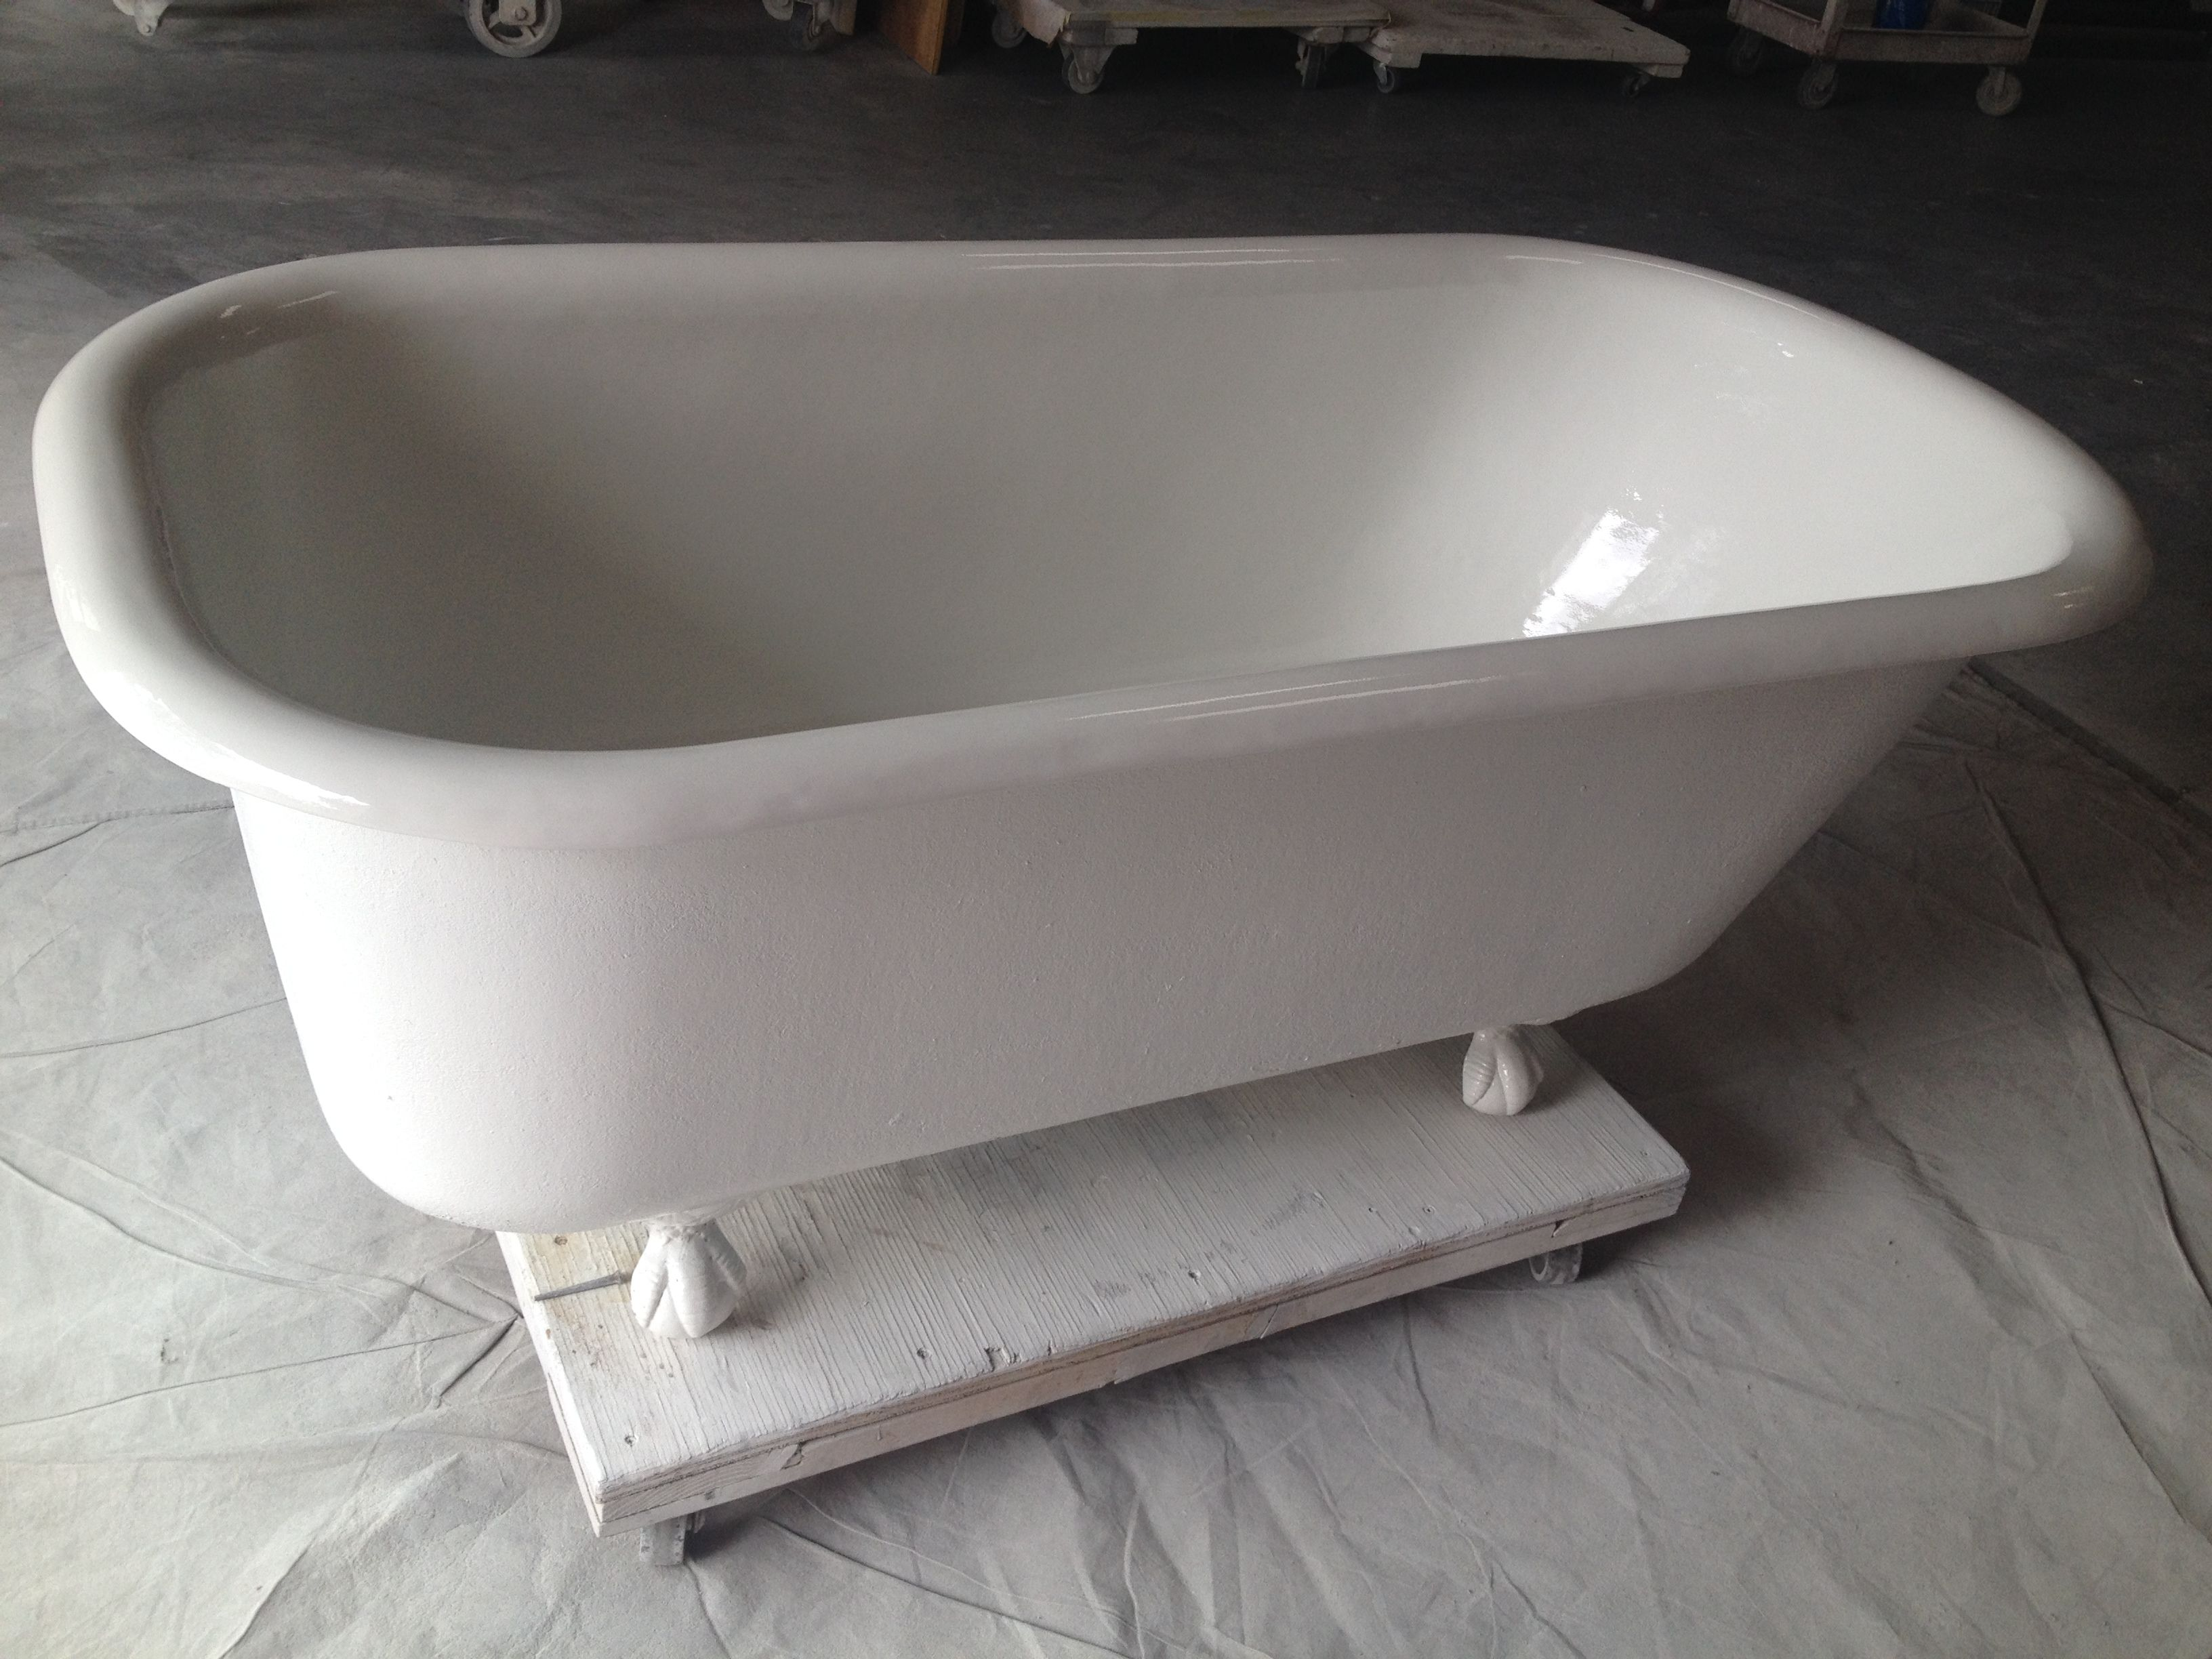 The clawfoot tub looks new after being sandblasted, refinished and buffed!